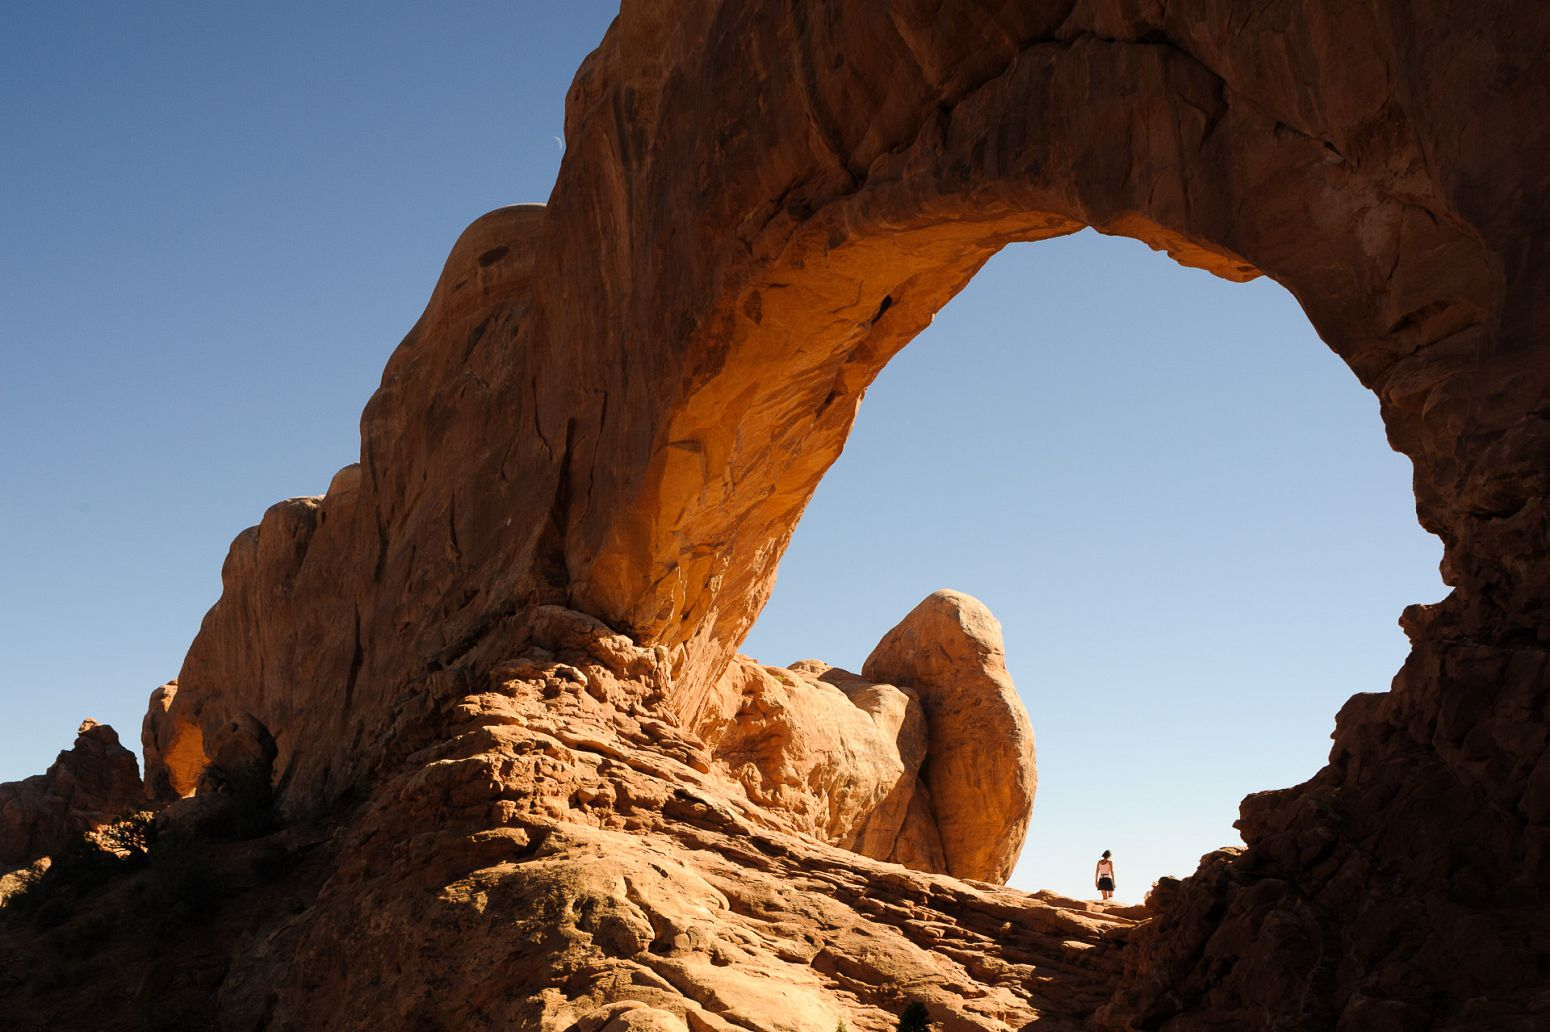 The Windows Section, Arches NP, Arizona, USA